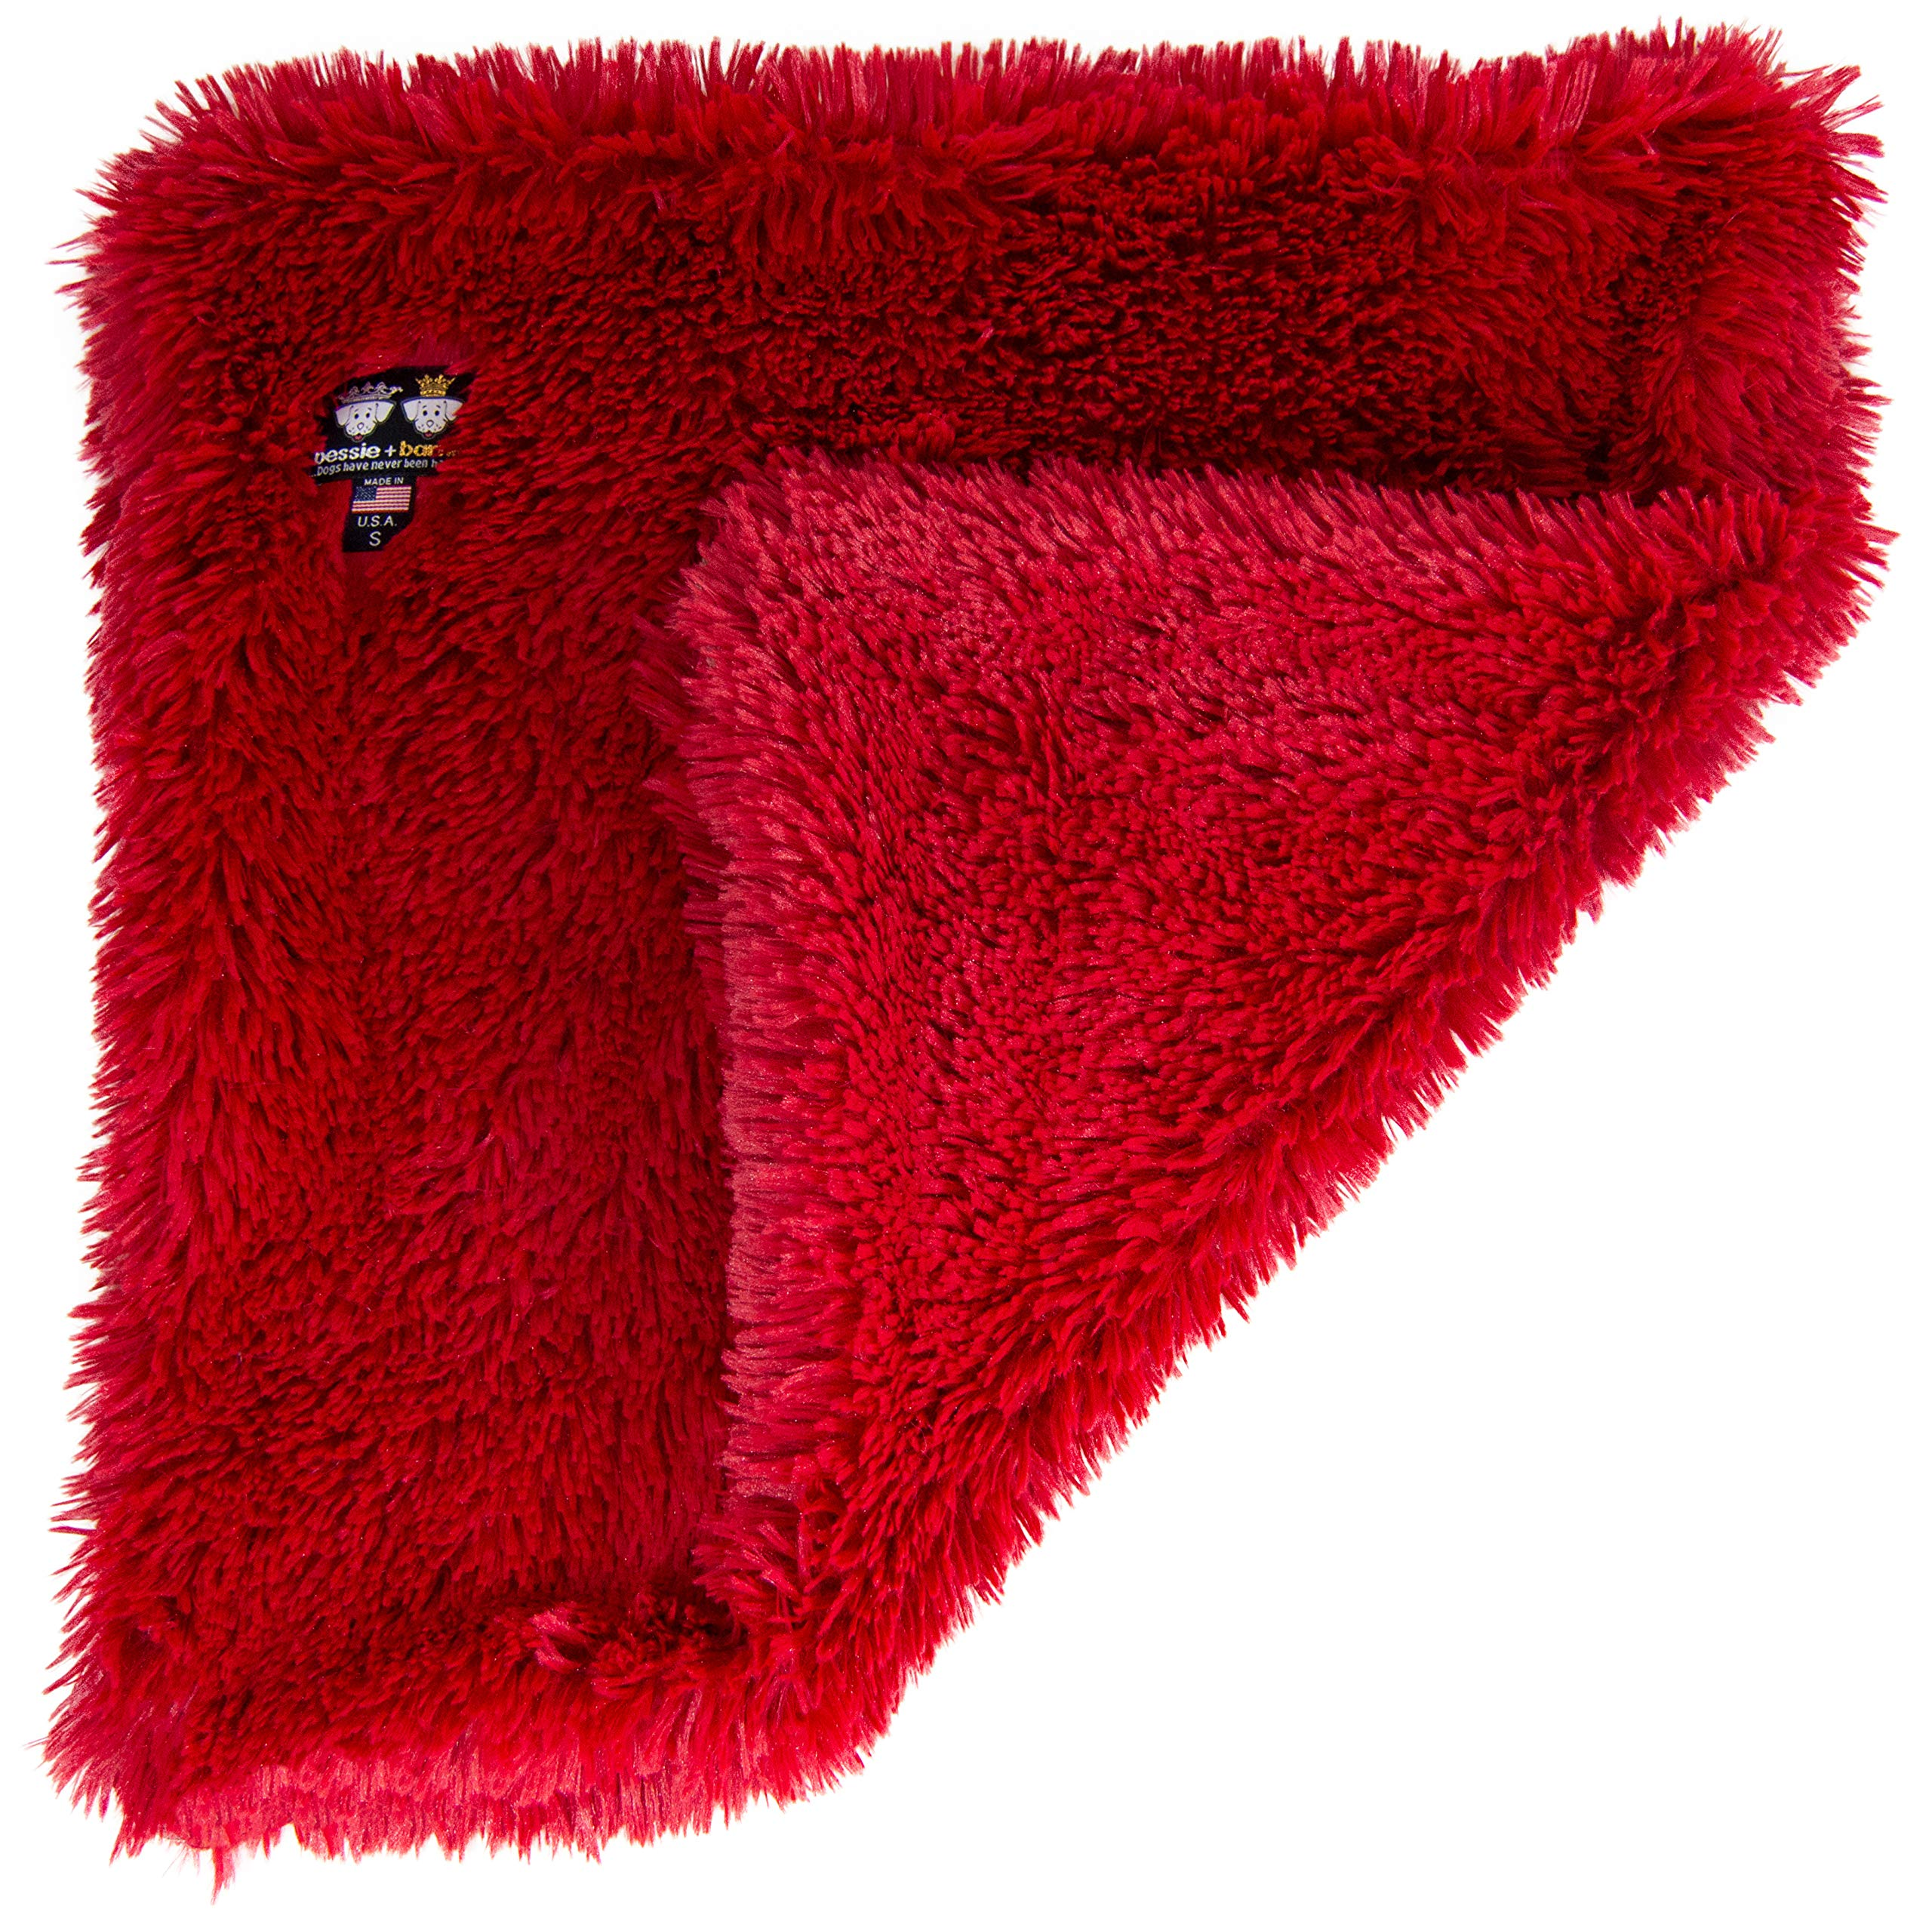 Bessie and Barnie Lipstick Luxury Shag Ultra Plush Faux Fur Pet, Dog, Cat, Puppy Super Soft Reversible Blanket (Multiple Sizes),XS - 20'' x 20'' by BESSIE AND BARNIE